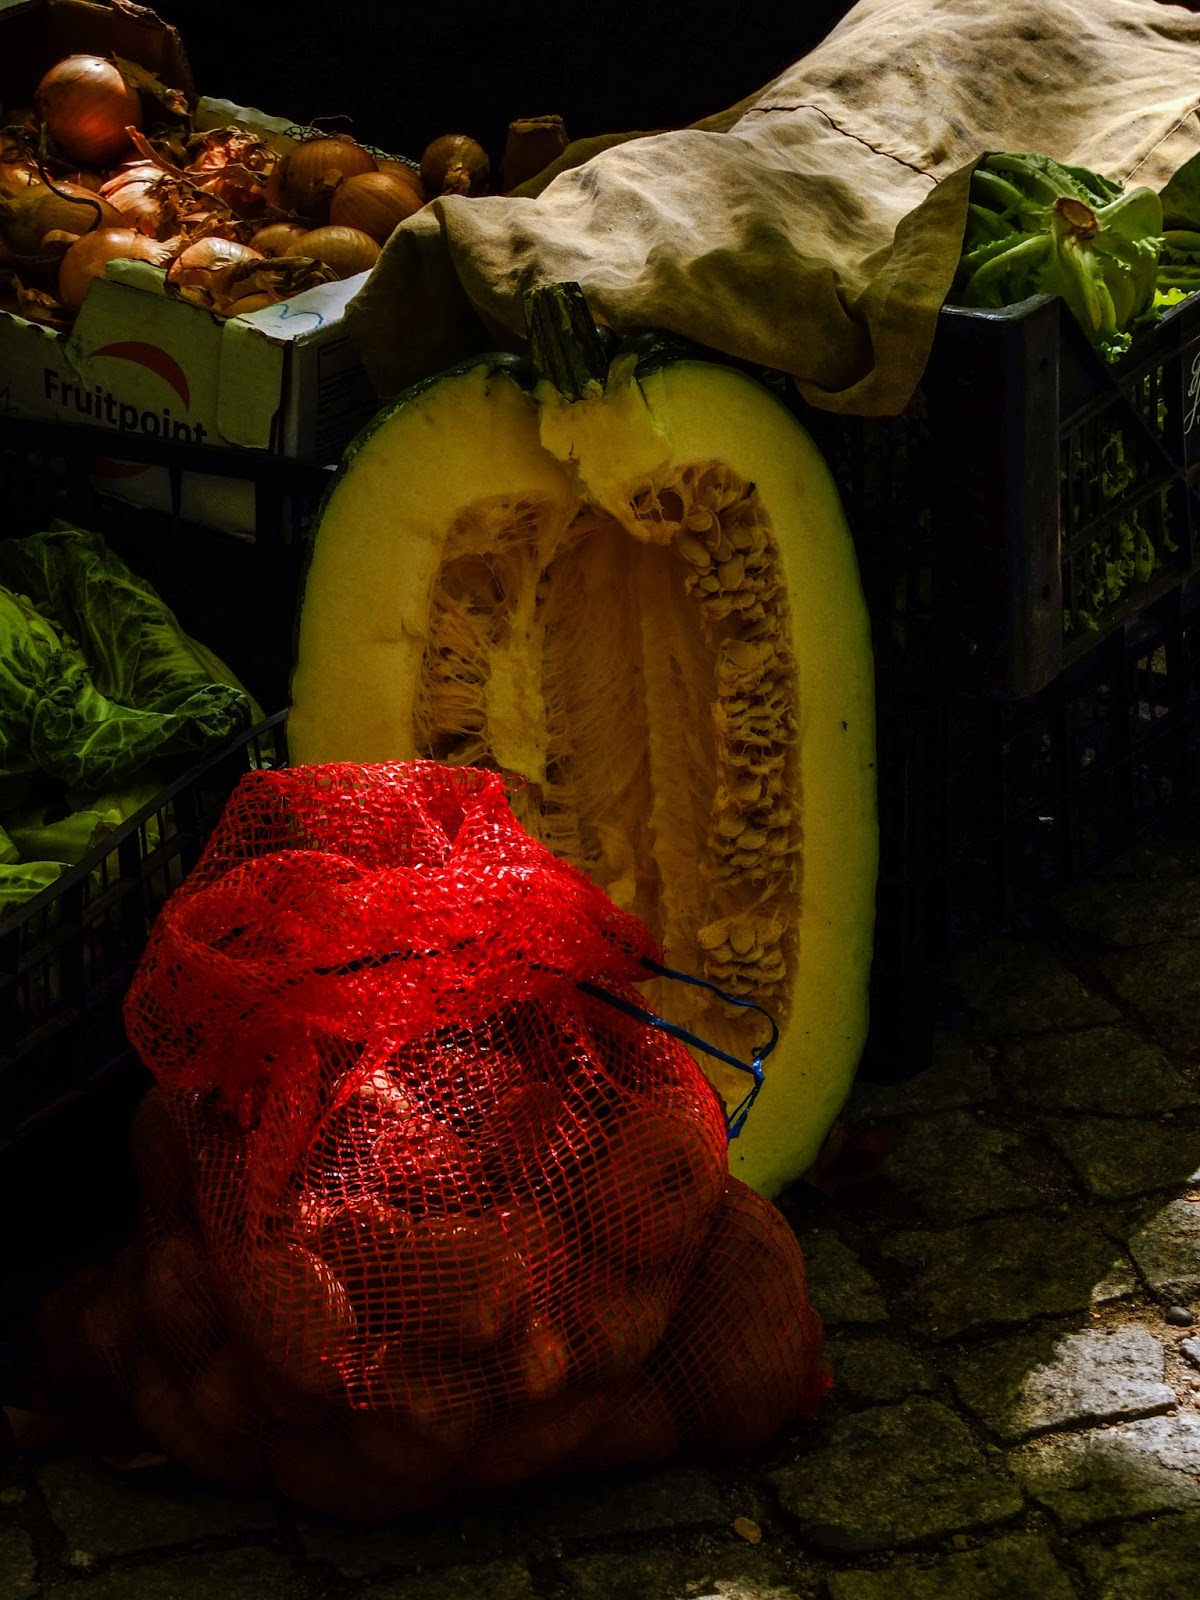 Half a giant yellow pumpkin on display with onions in bags and boxes at a market in Porto, Portugal.